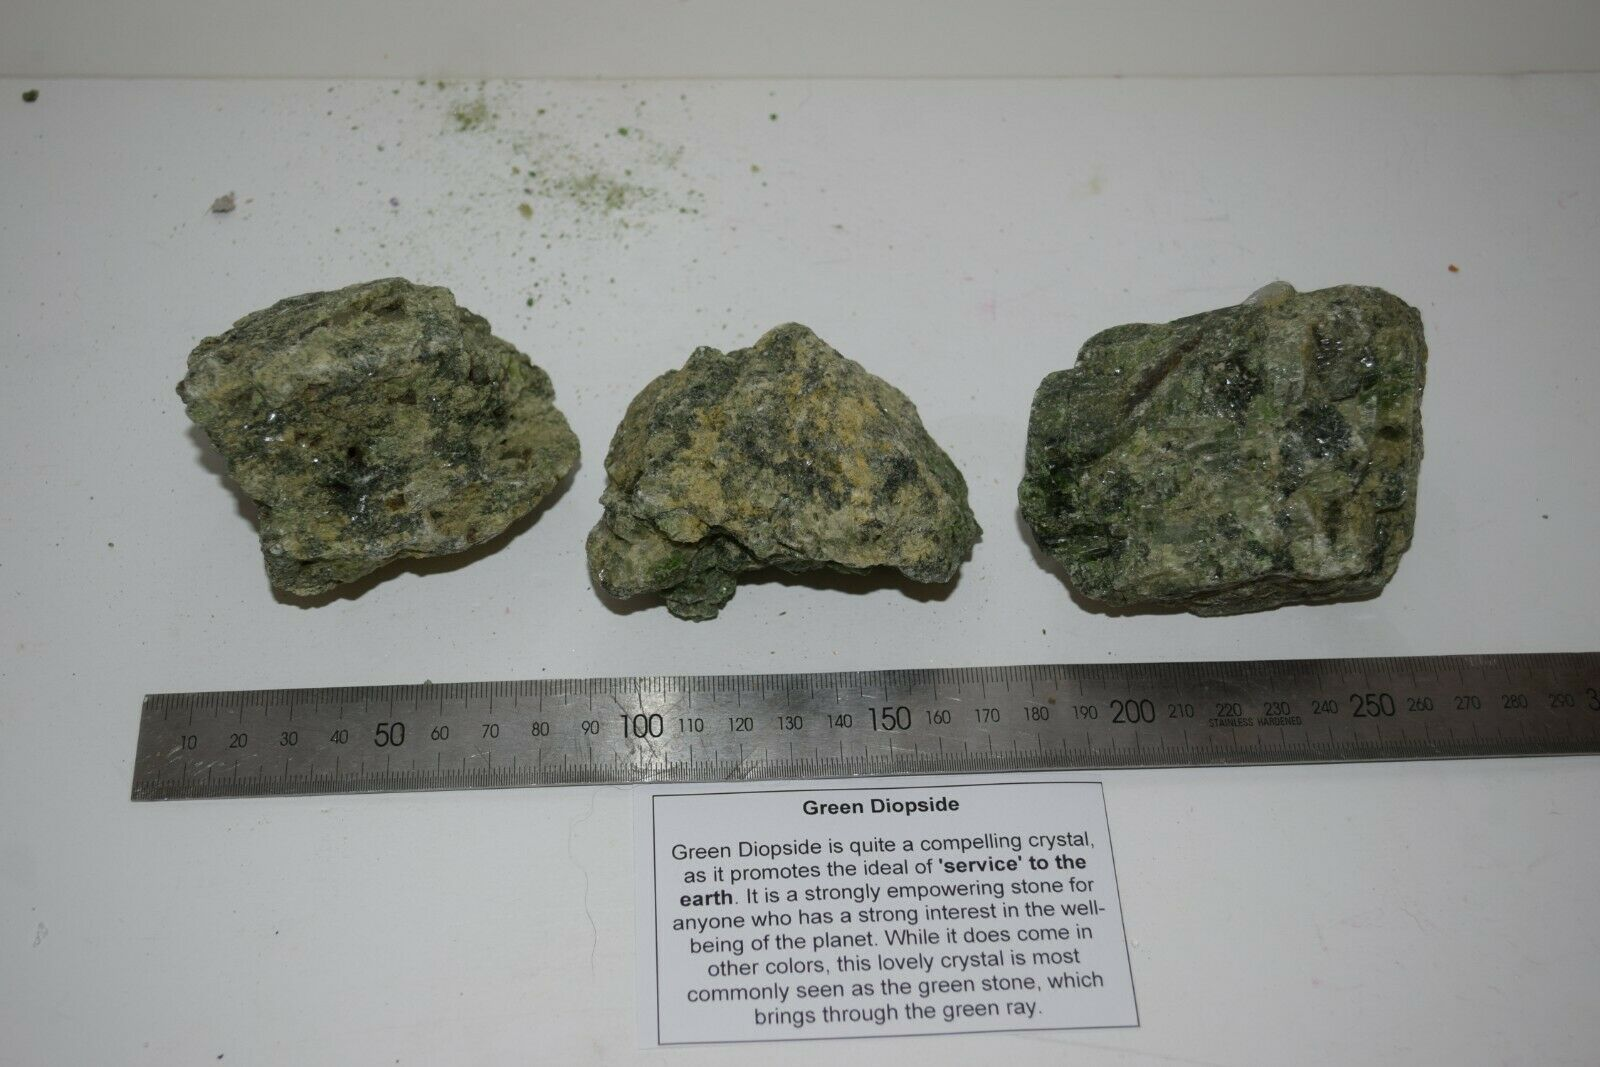 Green Diopside Gemstones bulk 1 kilo bag natural rough mixed stones sizes